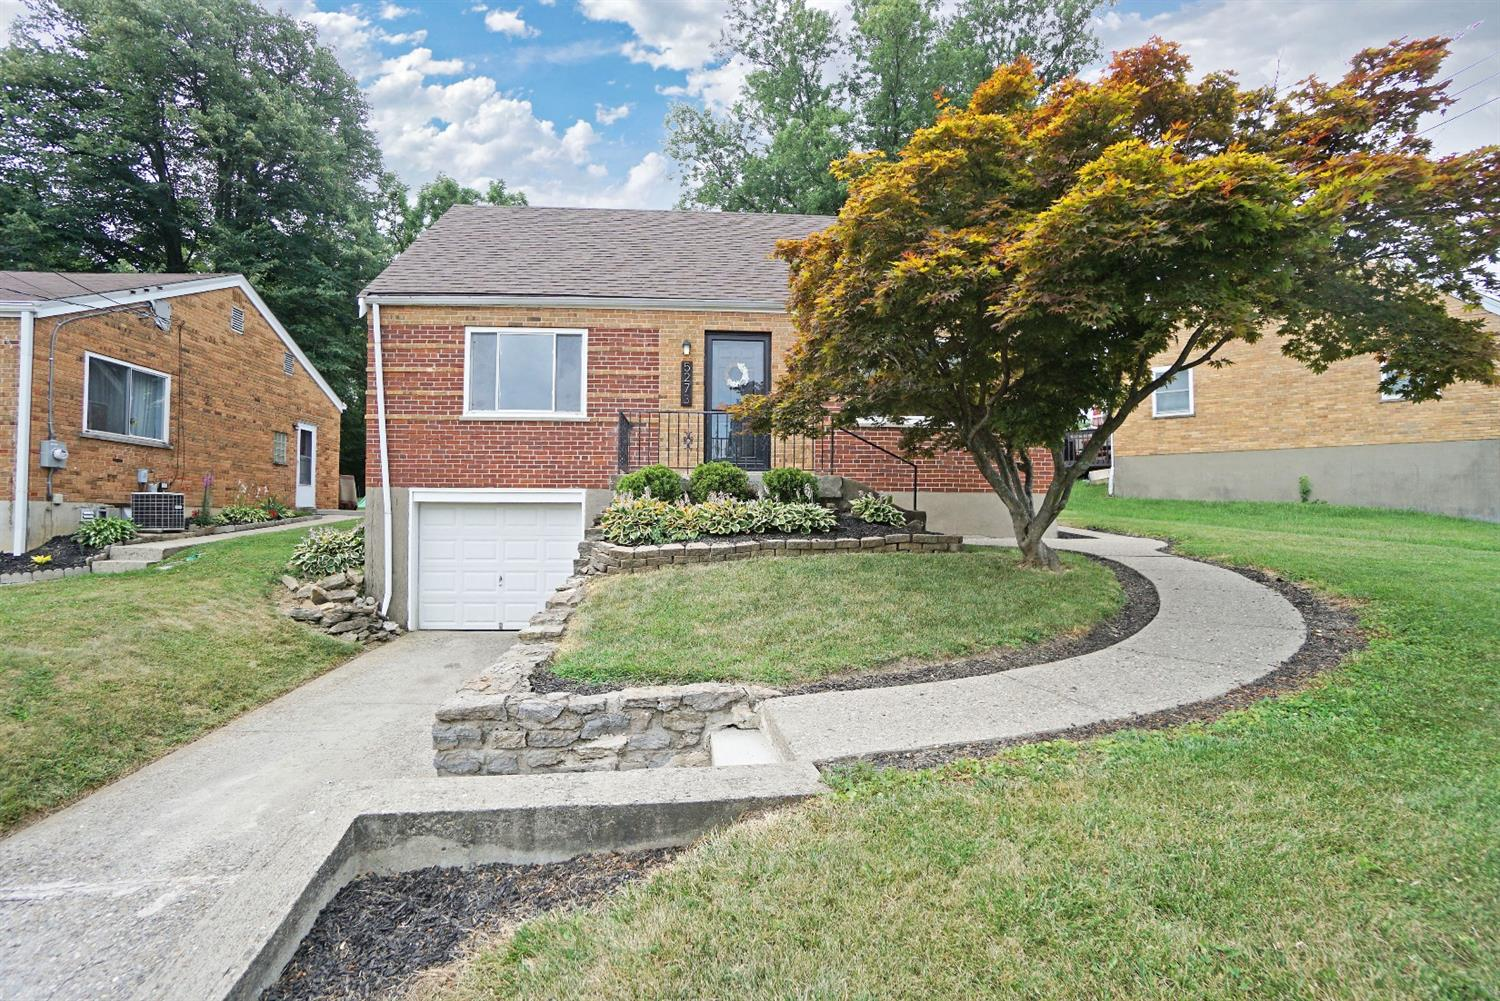 5273 Leona Dr Covedale, OH